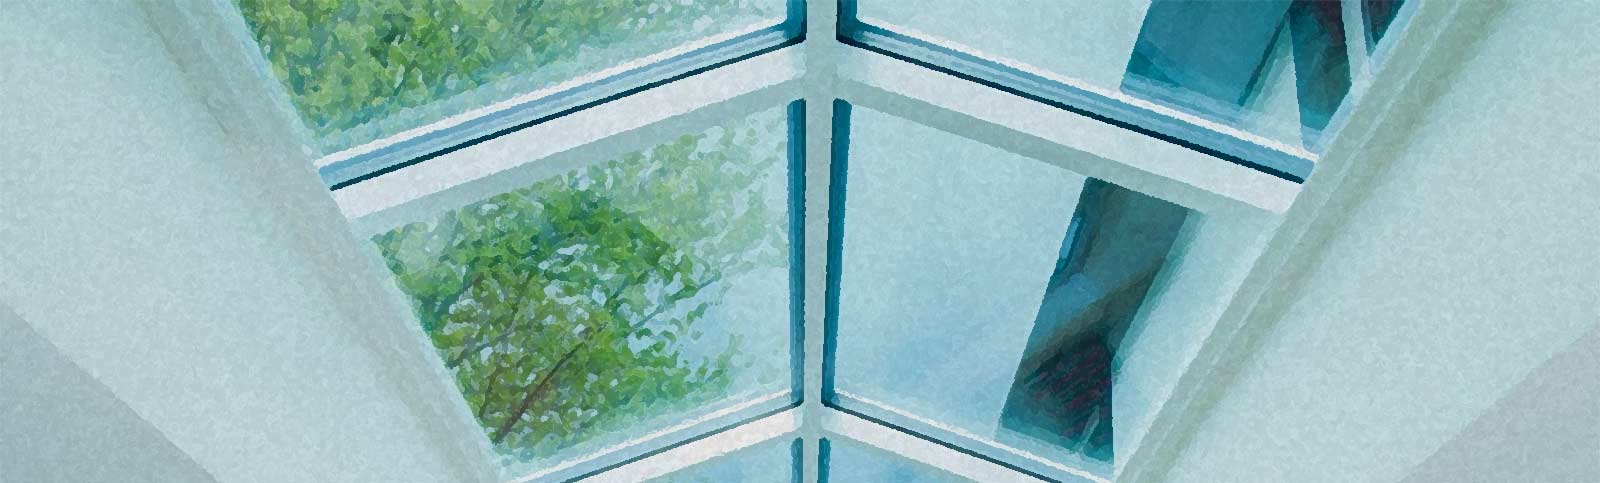 With More Types of Rooflights on the Market than Ever, What Rooflight is Right for Your Project?